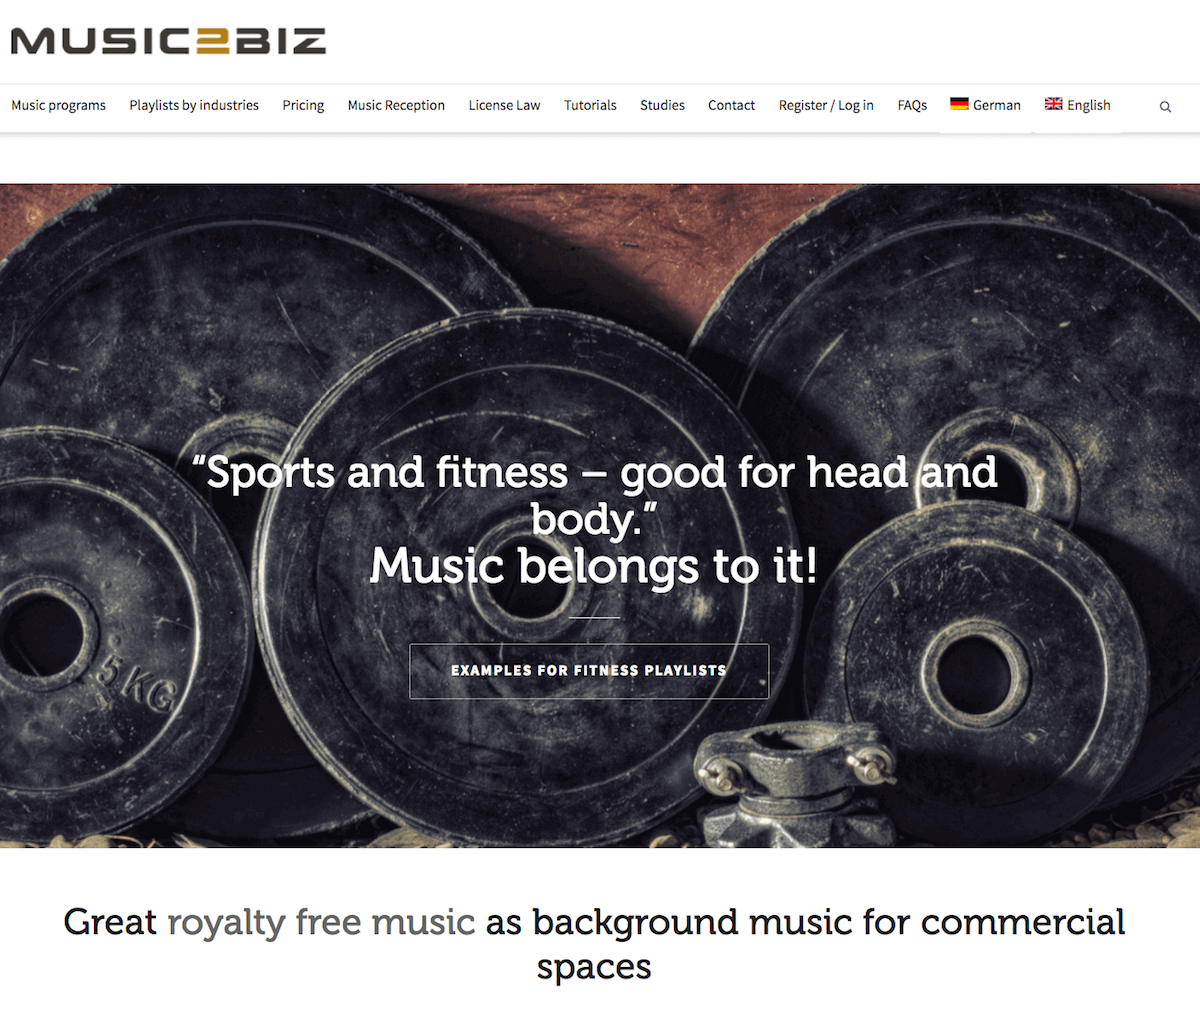 MUSIC2BIZ – Royalty free music playlists for business premises